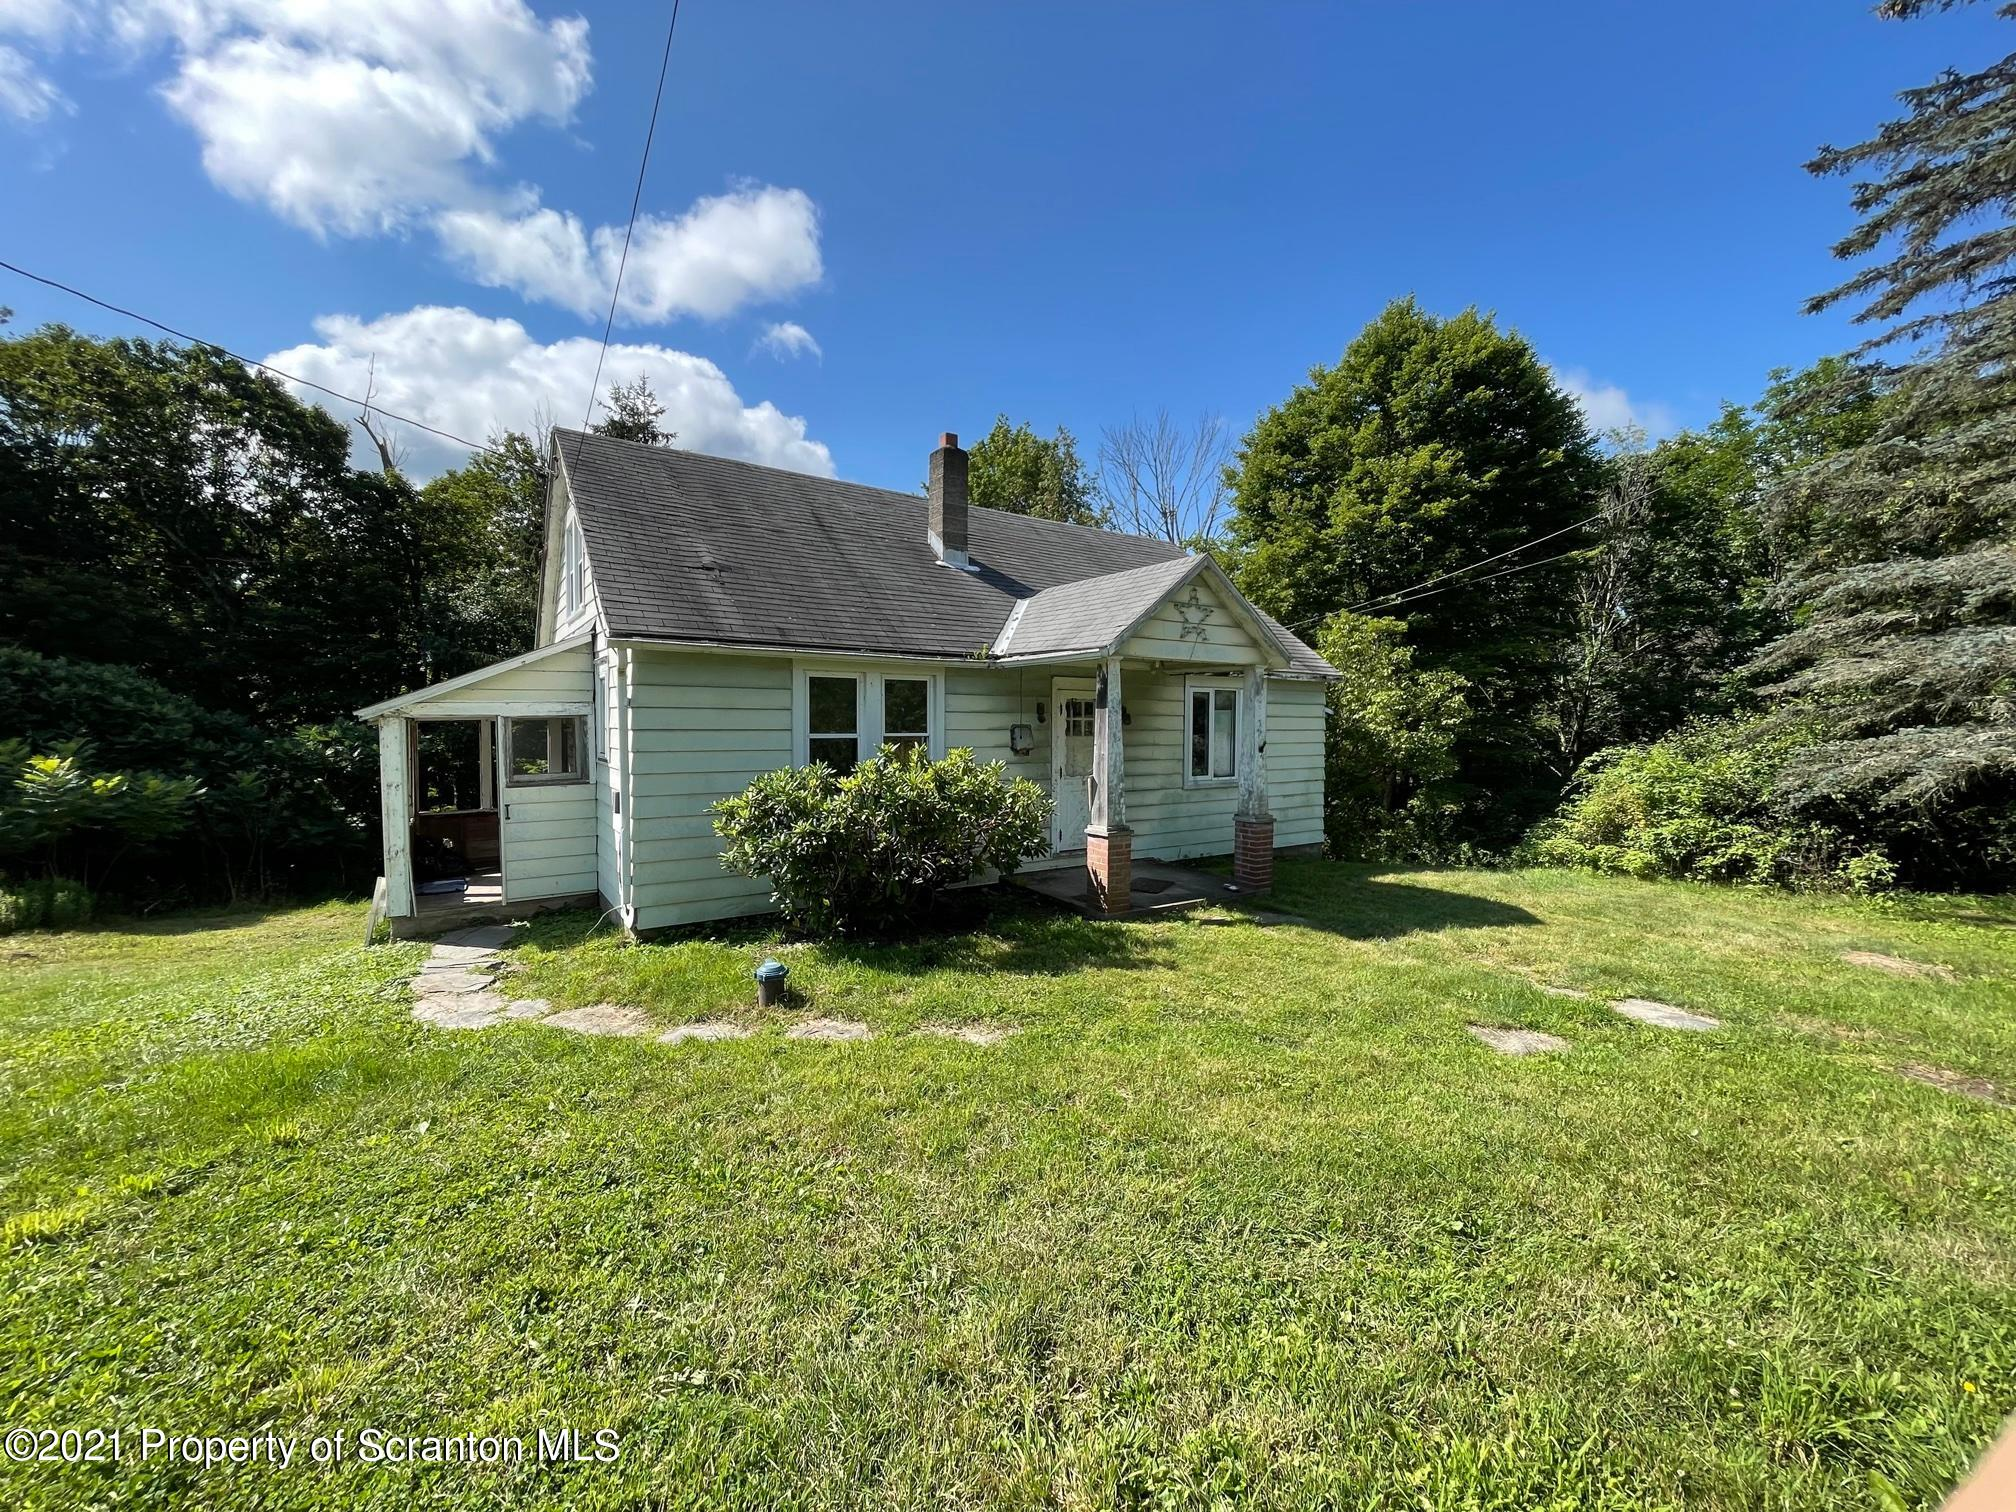 236 Crow Hill Rd, Monroe Twp, Pennsylvania 18612, 4 Bedrooms Bedrooms, 6 Rooms Rooms,1 BathroomBathrooms,Single Family,For Sale,Crow Hill,21-3479